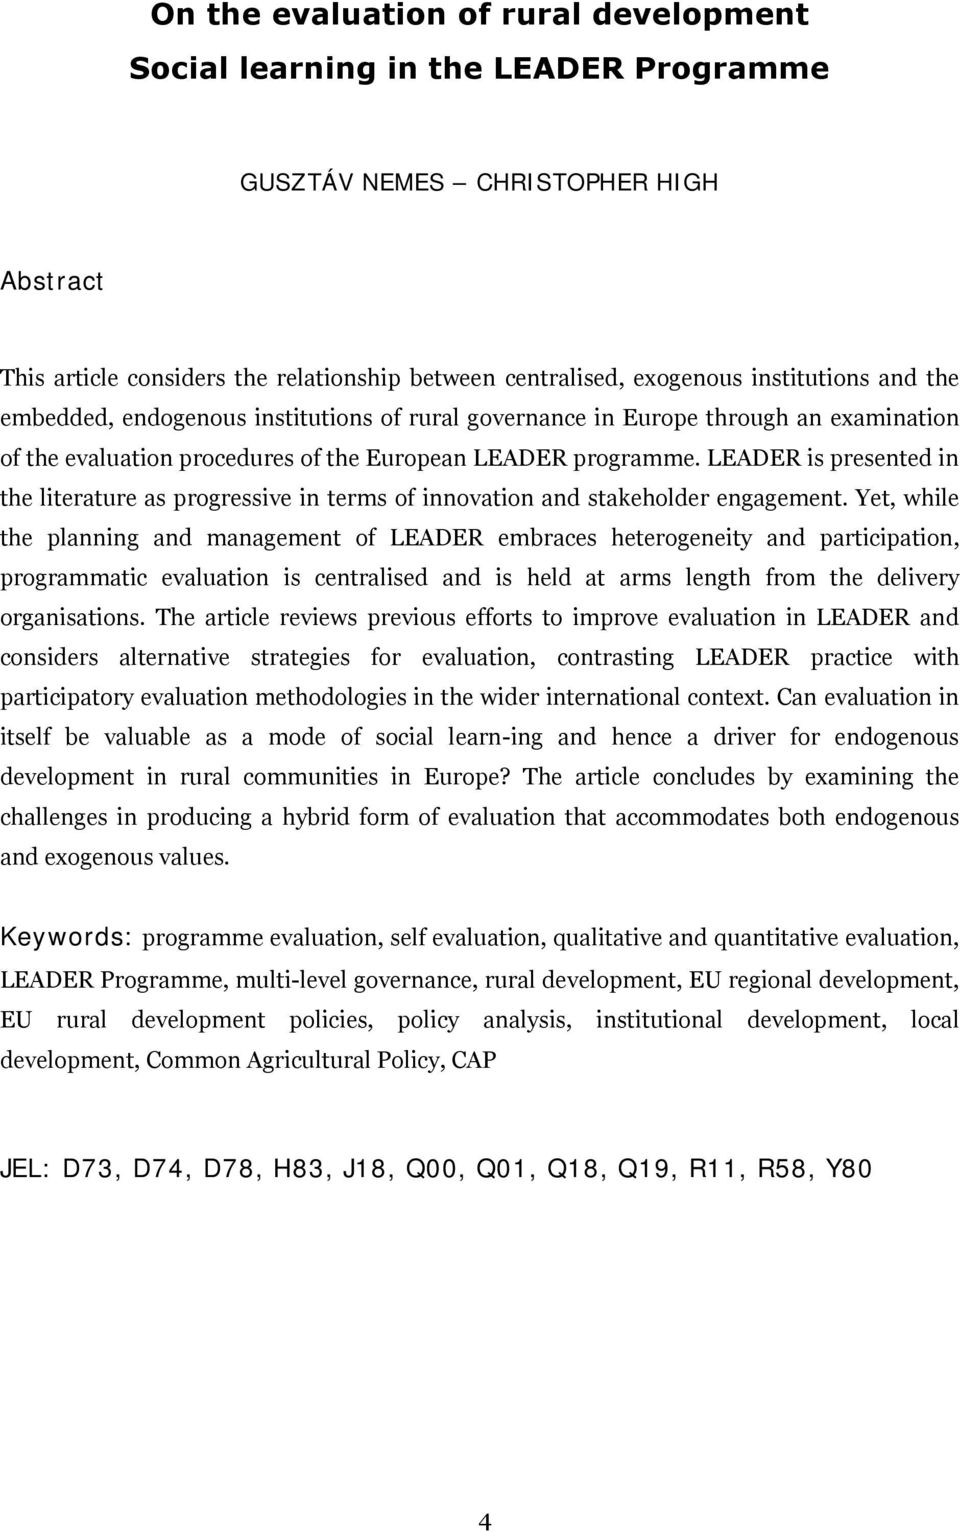 LEADER is presented in the literature as progressive in terms of innovation and stakeholder engagement.